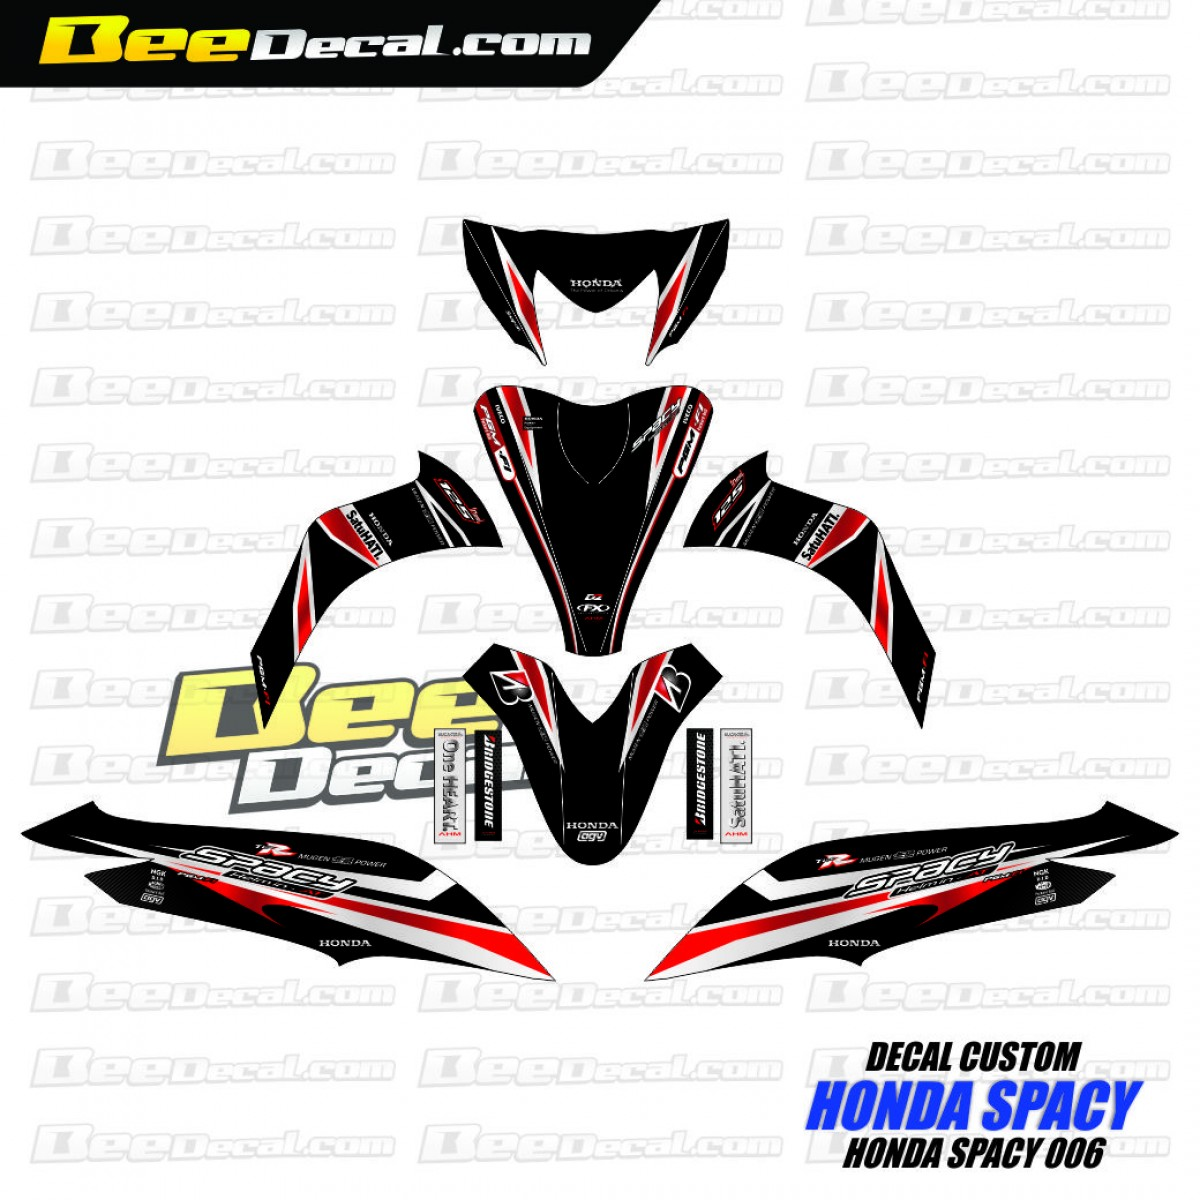 HONDA SPACY 006